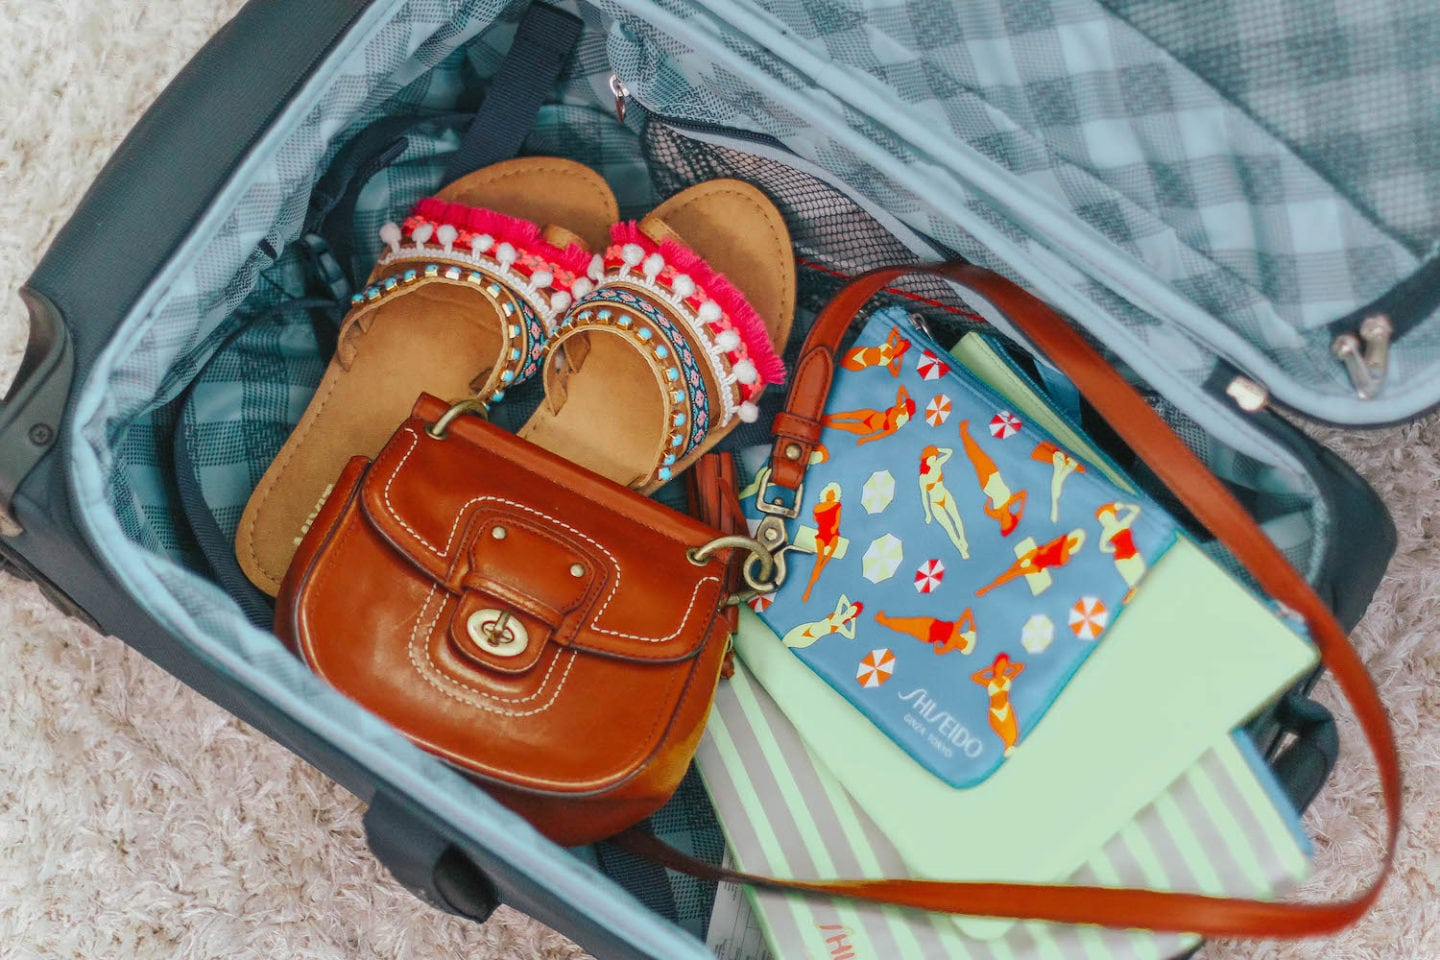 The Best Carry-On Luggage [+ 5 Must-Know Packing Tips] - Holly Habeck